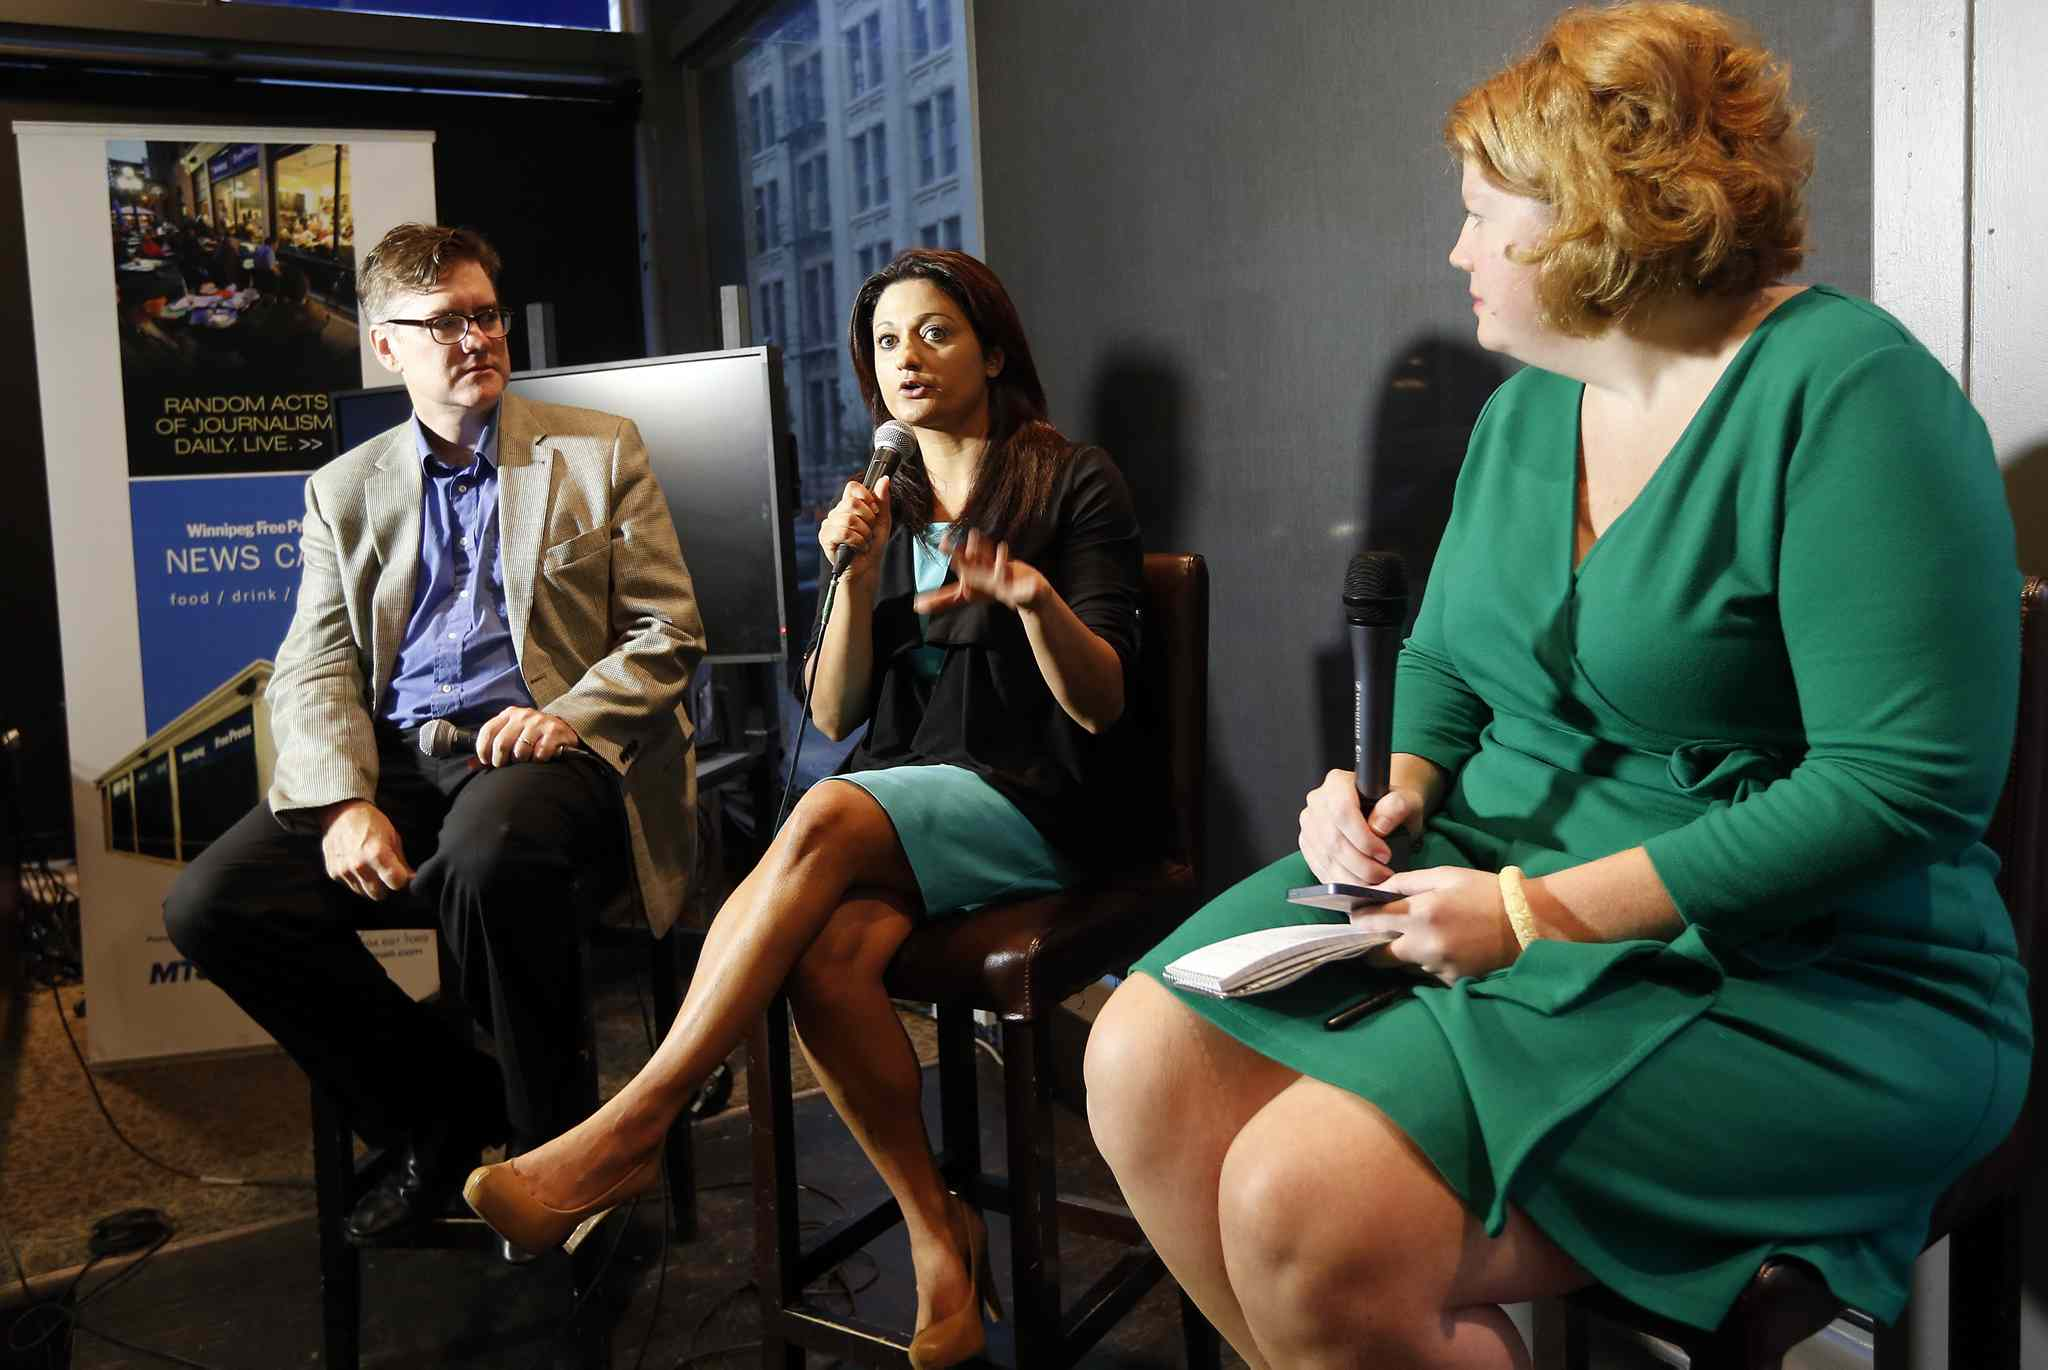 Dougald Lamont (left) and Rana Bokhari (centre) are both running for the Manitoba provincial Liberal Party leadership. Reporter Mary Agnes Welch (right) hosted the debate at the Winnipeg Free Press News Café Thursday morning.